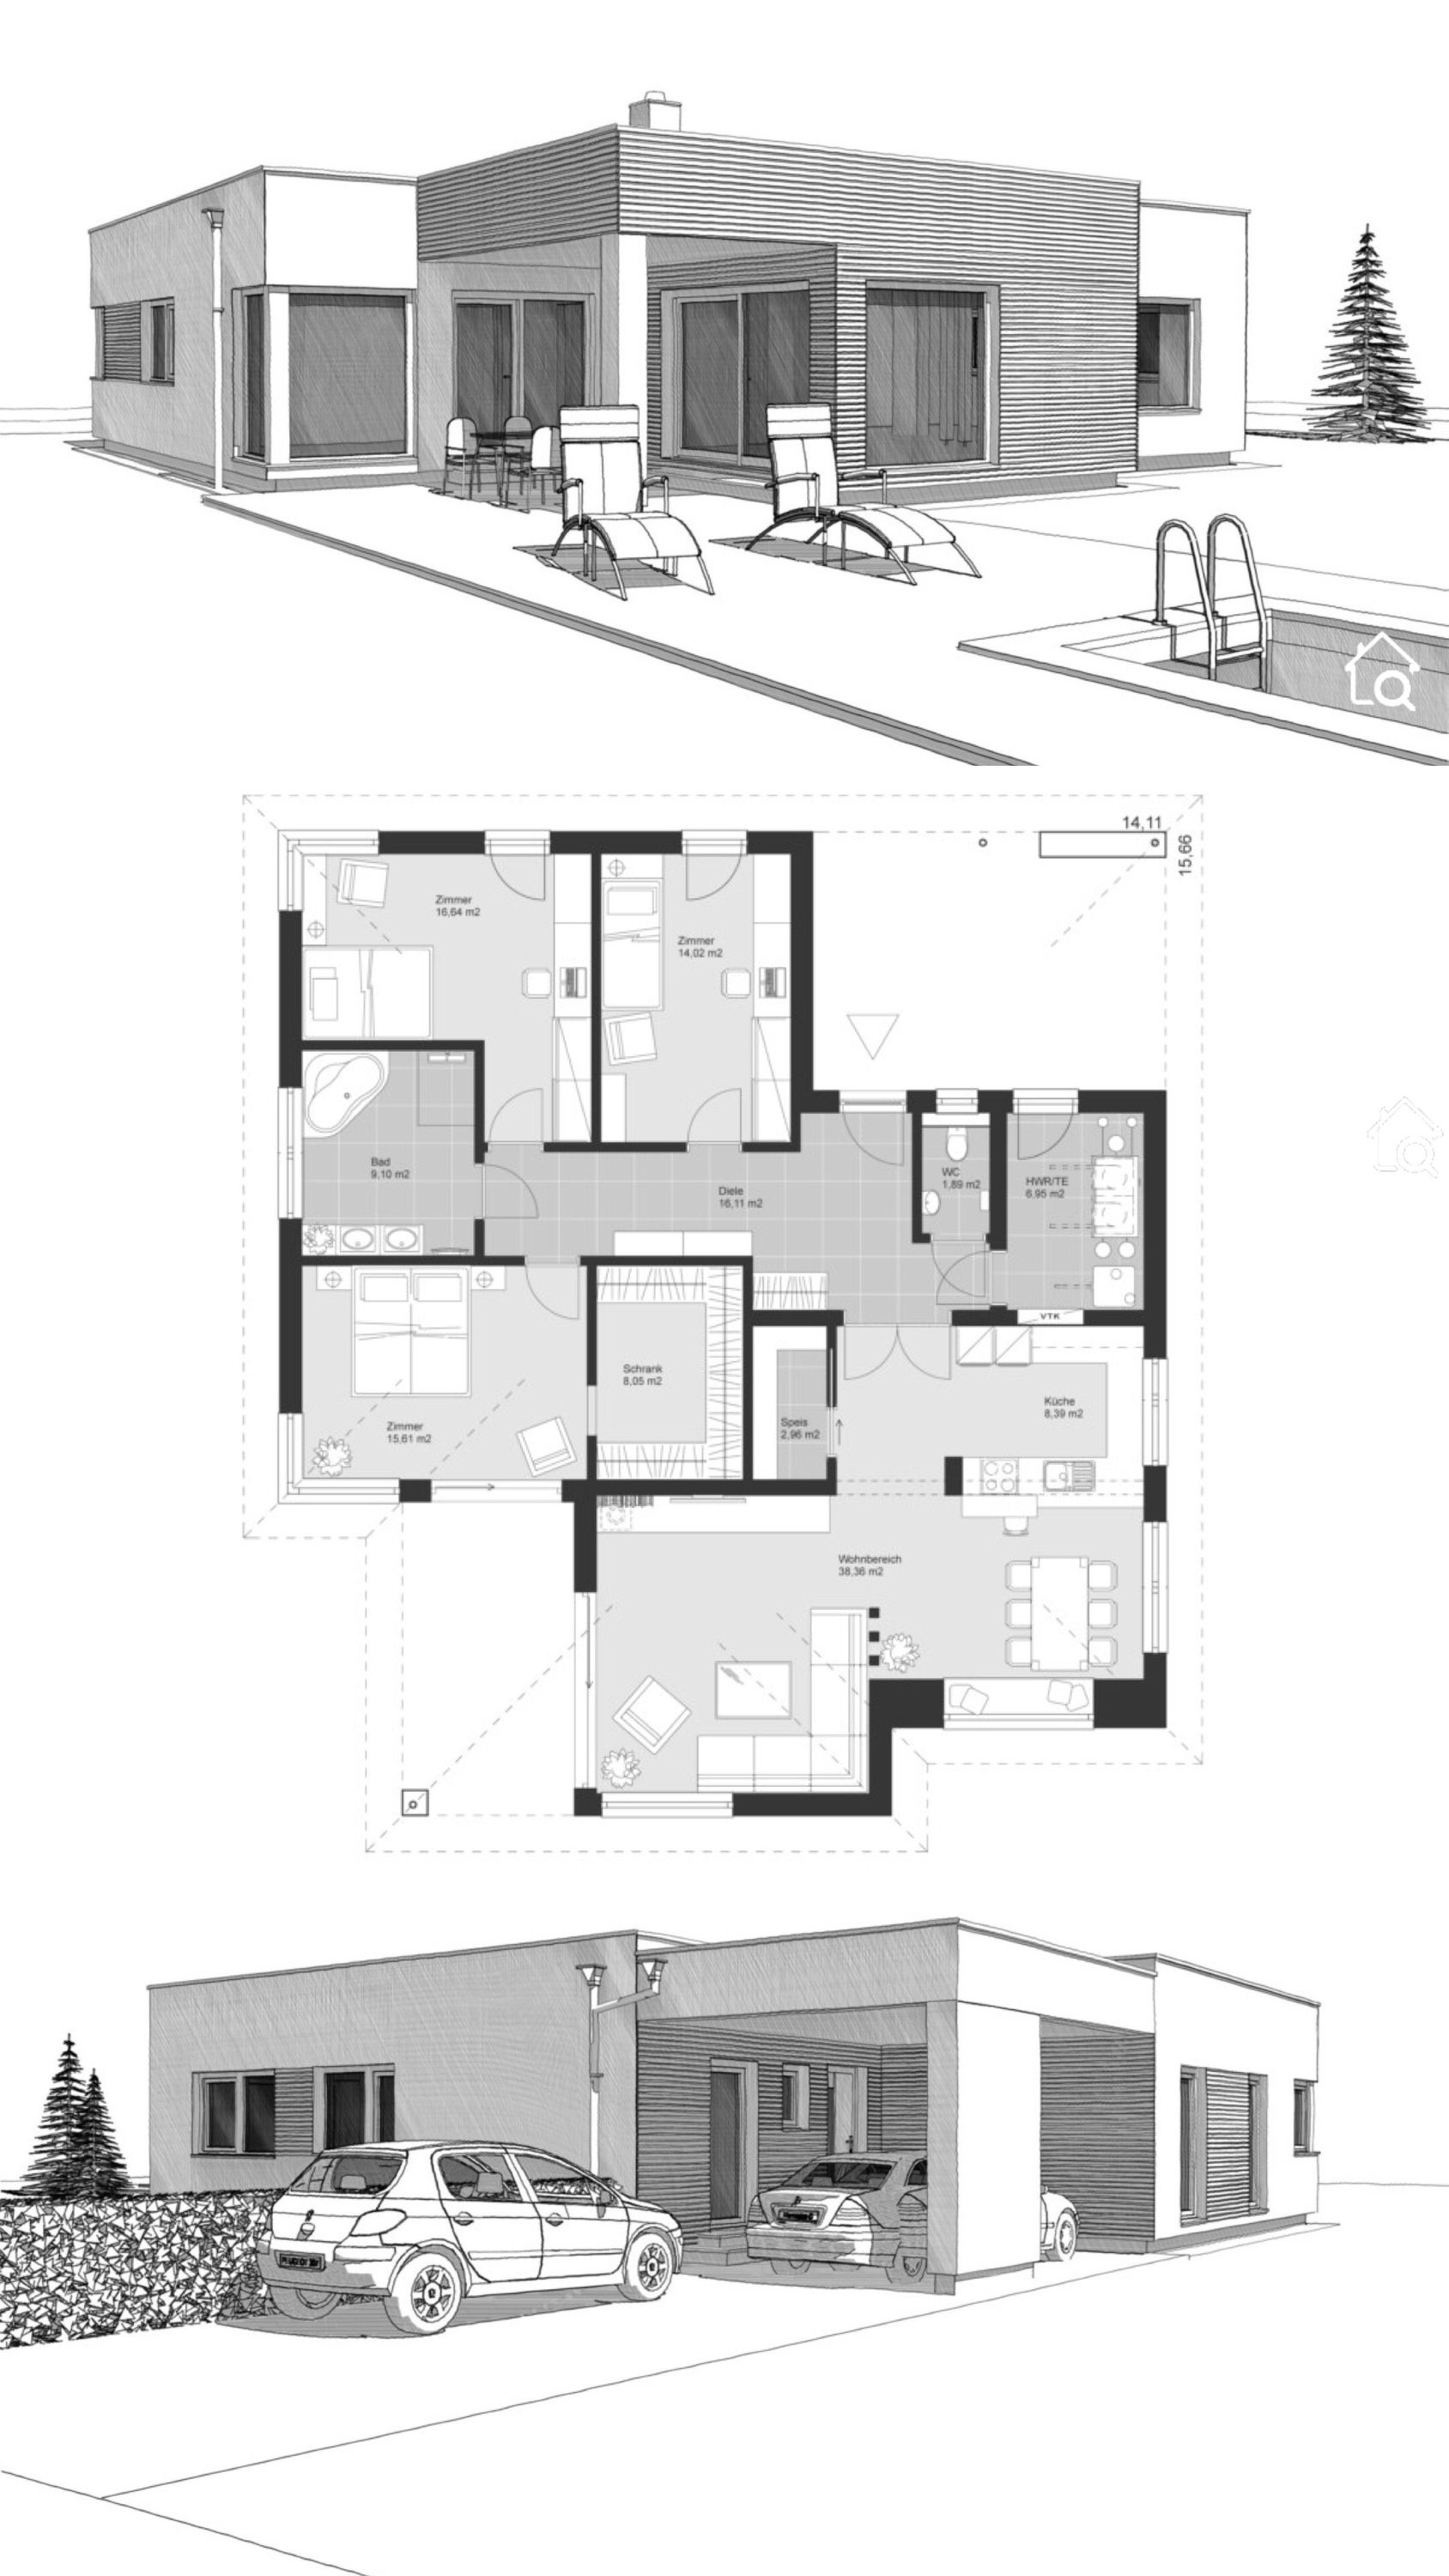 Bungalow House Plans Modern Contemporary European Design Ideas with e Story 3 Bedroom & Flat Roof